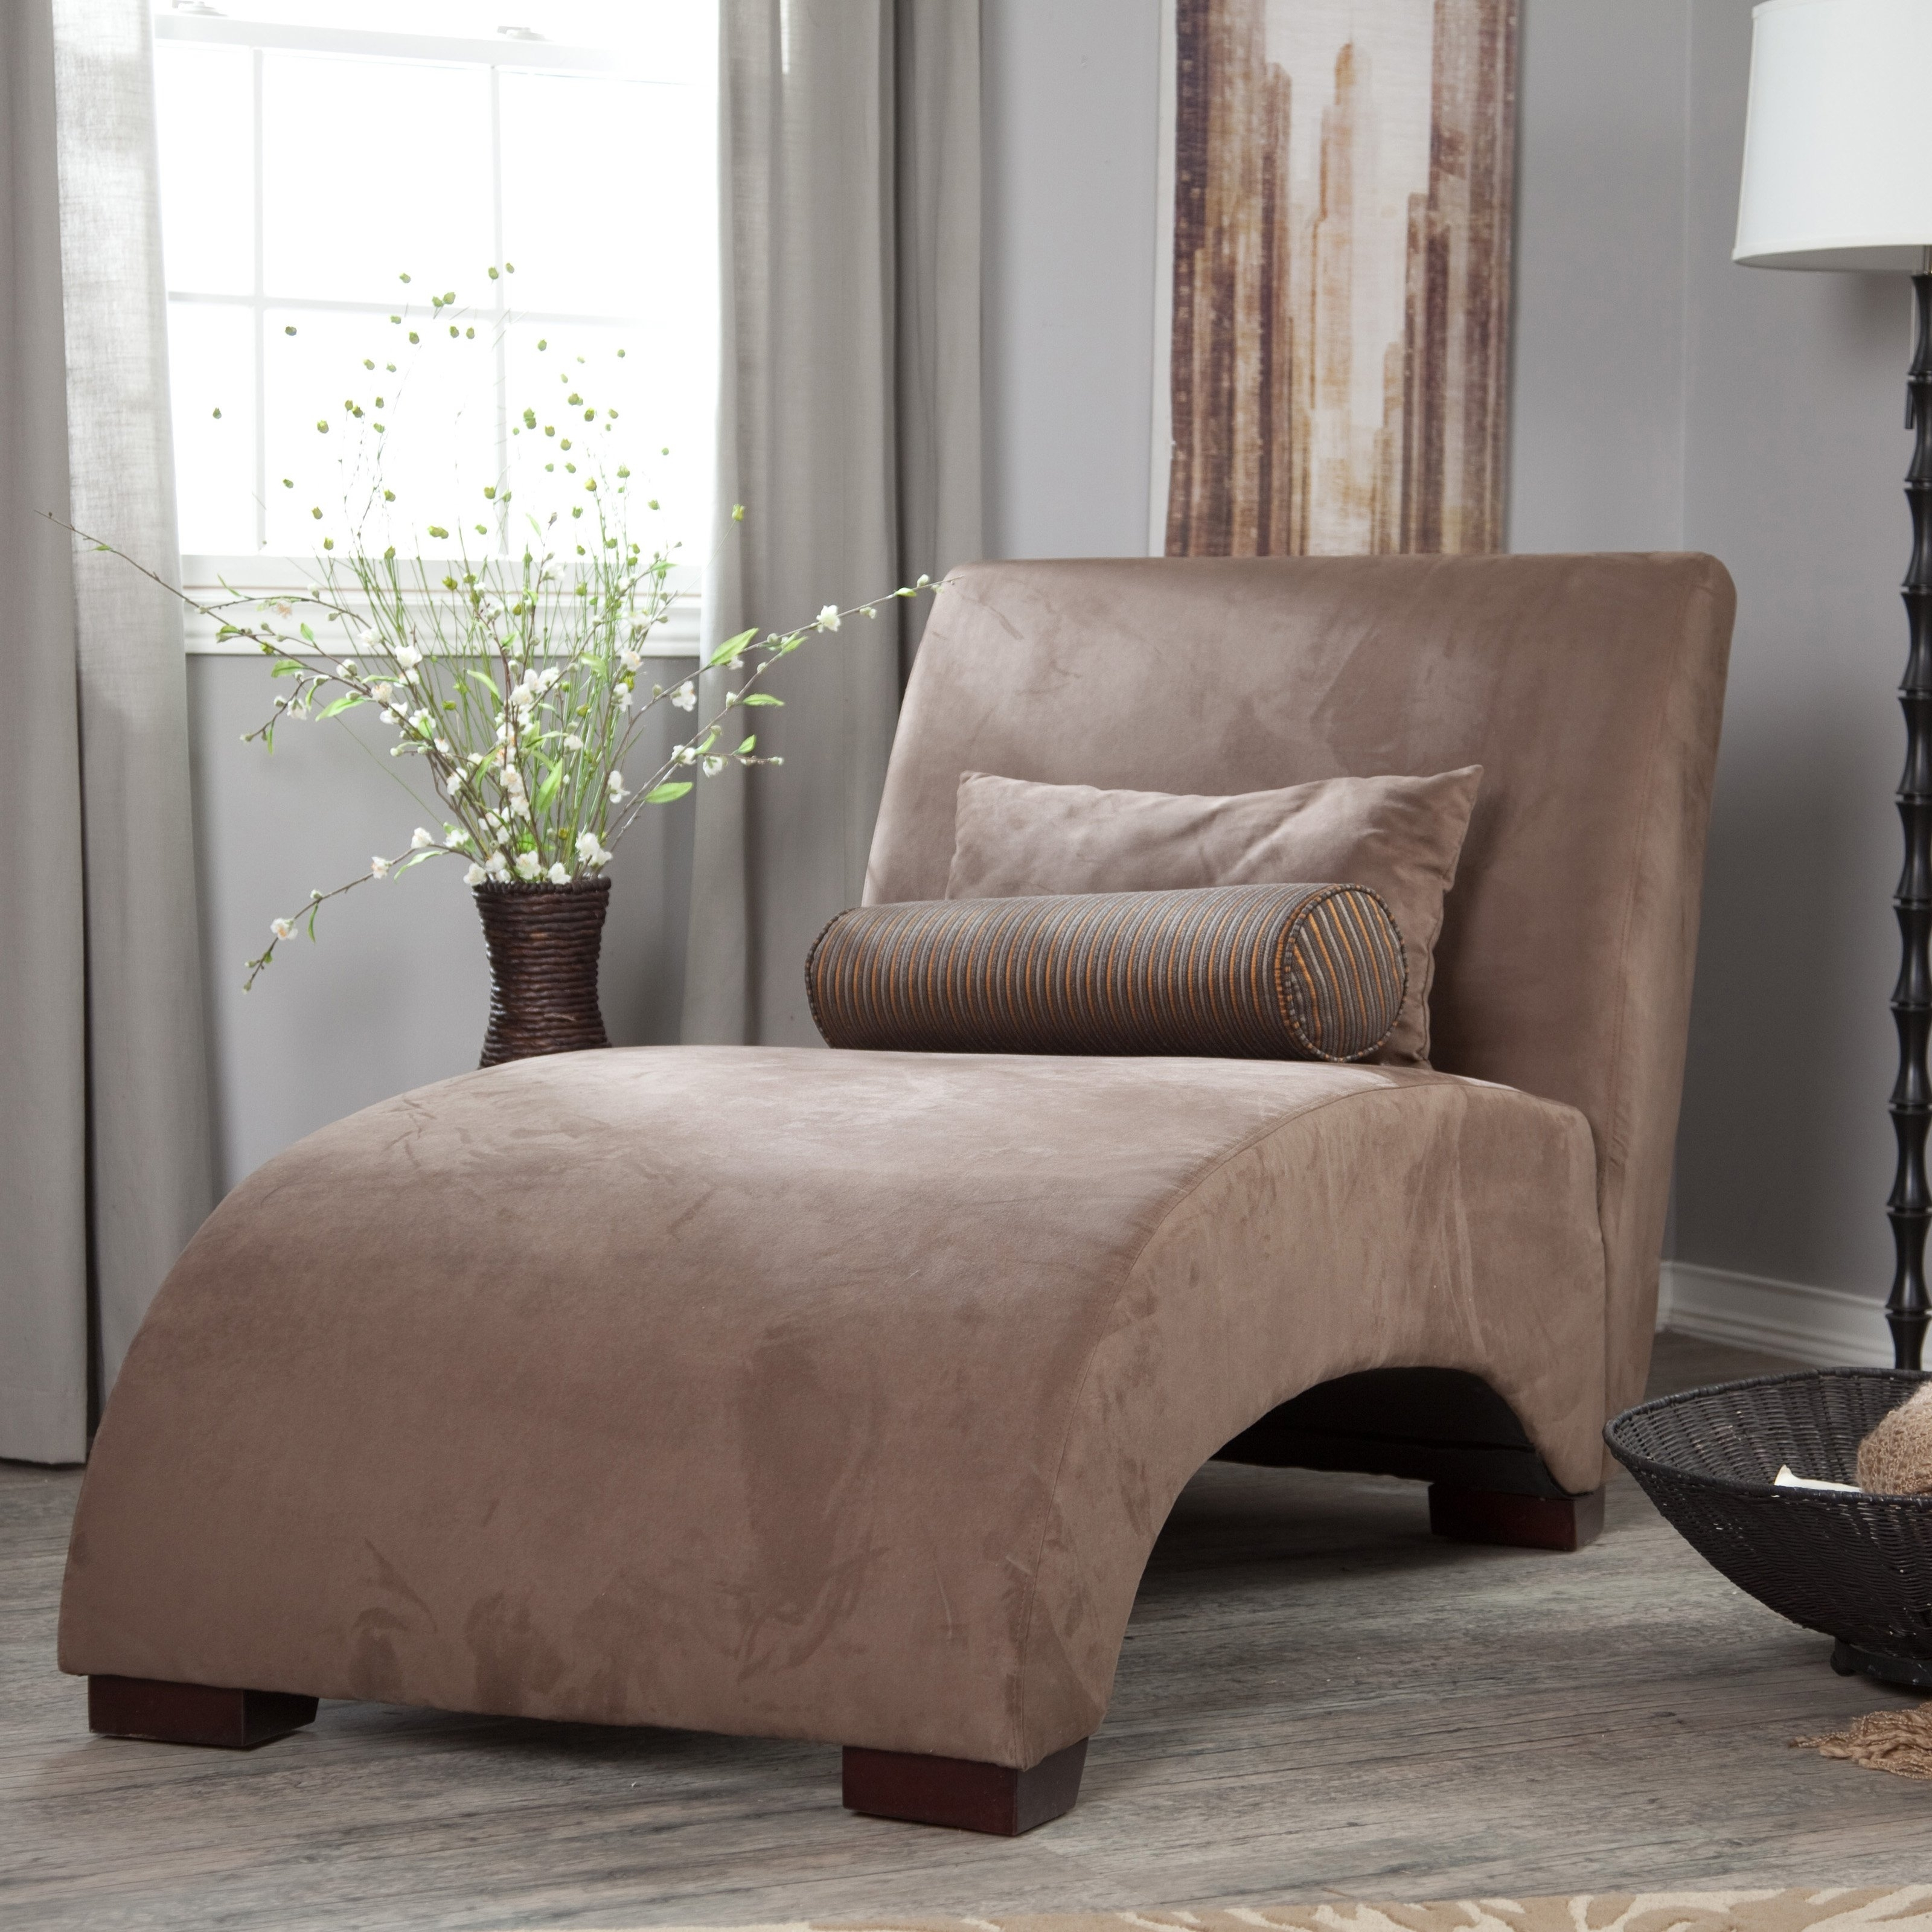 leather for luxury grey minimalist sectionals of sofas lounge with modern and chaise bedroom design sectional sofa beautiful amazing